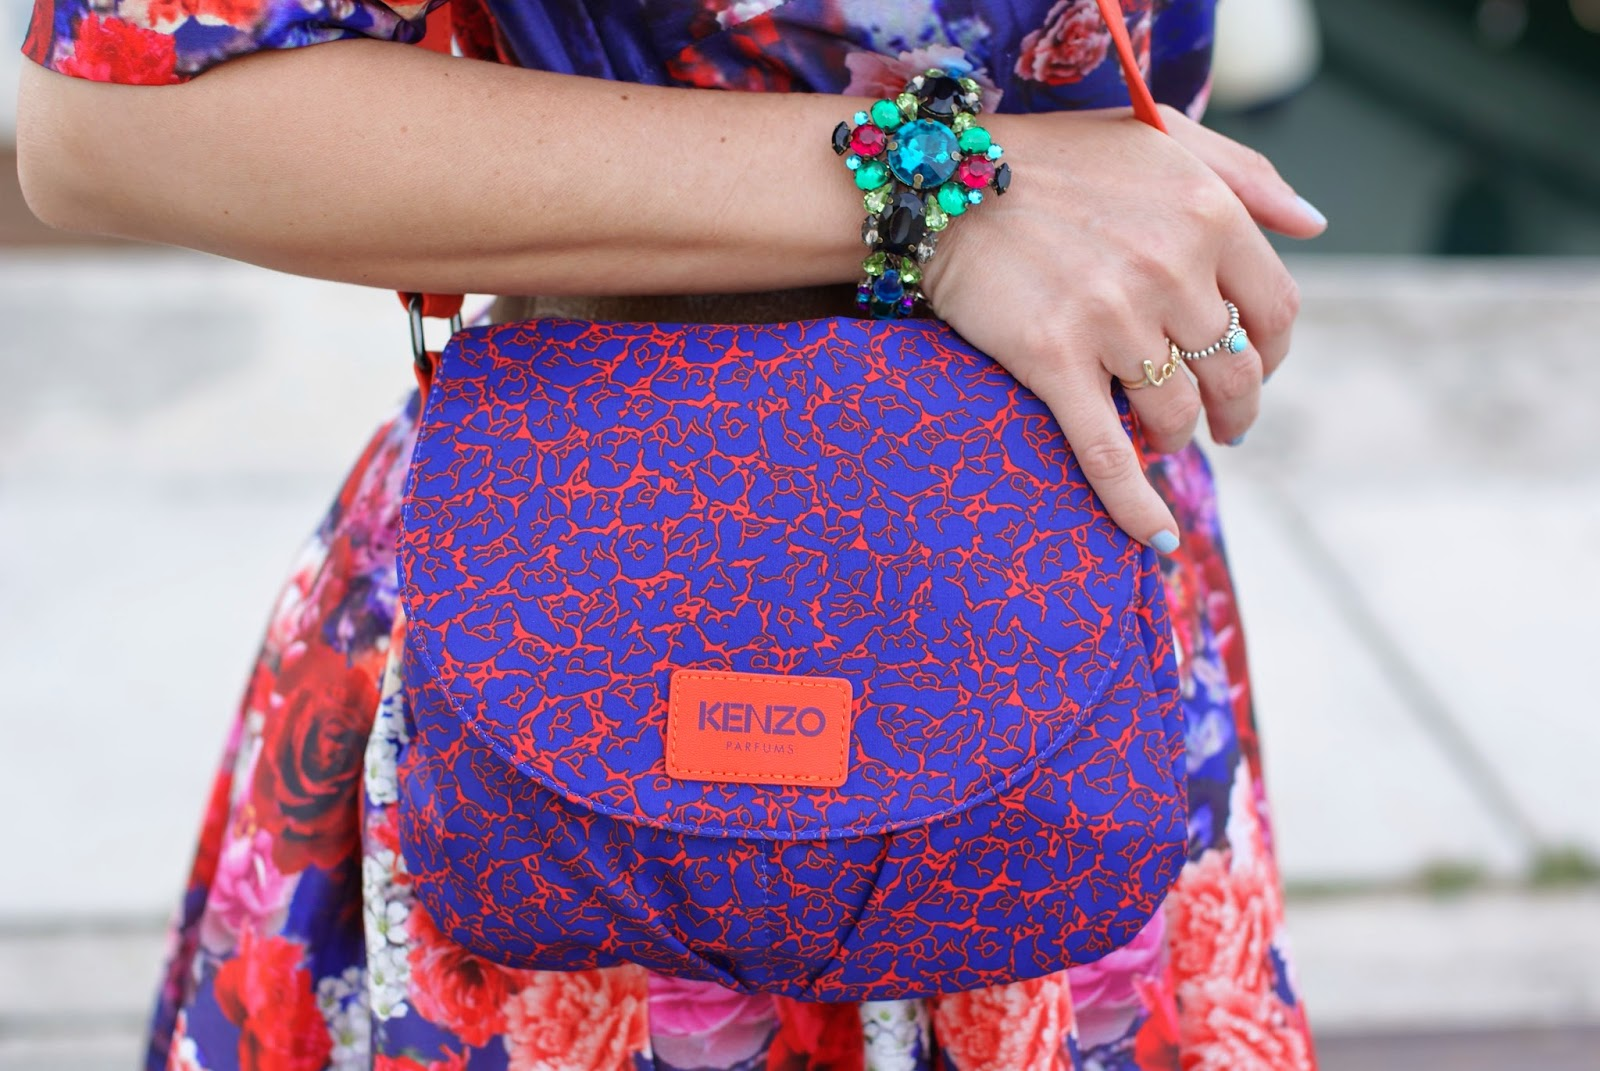 Kenzo bag, Sephora Kenzo gift, Mercantia bijoux, Fashion and Cookies, fashion blogger